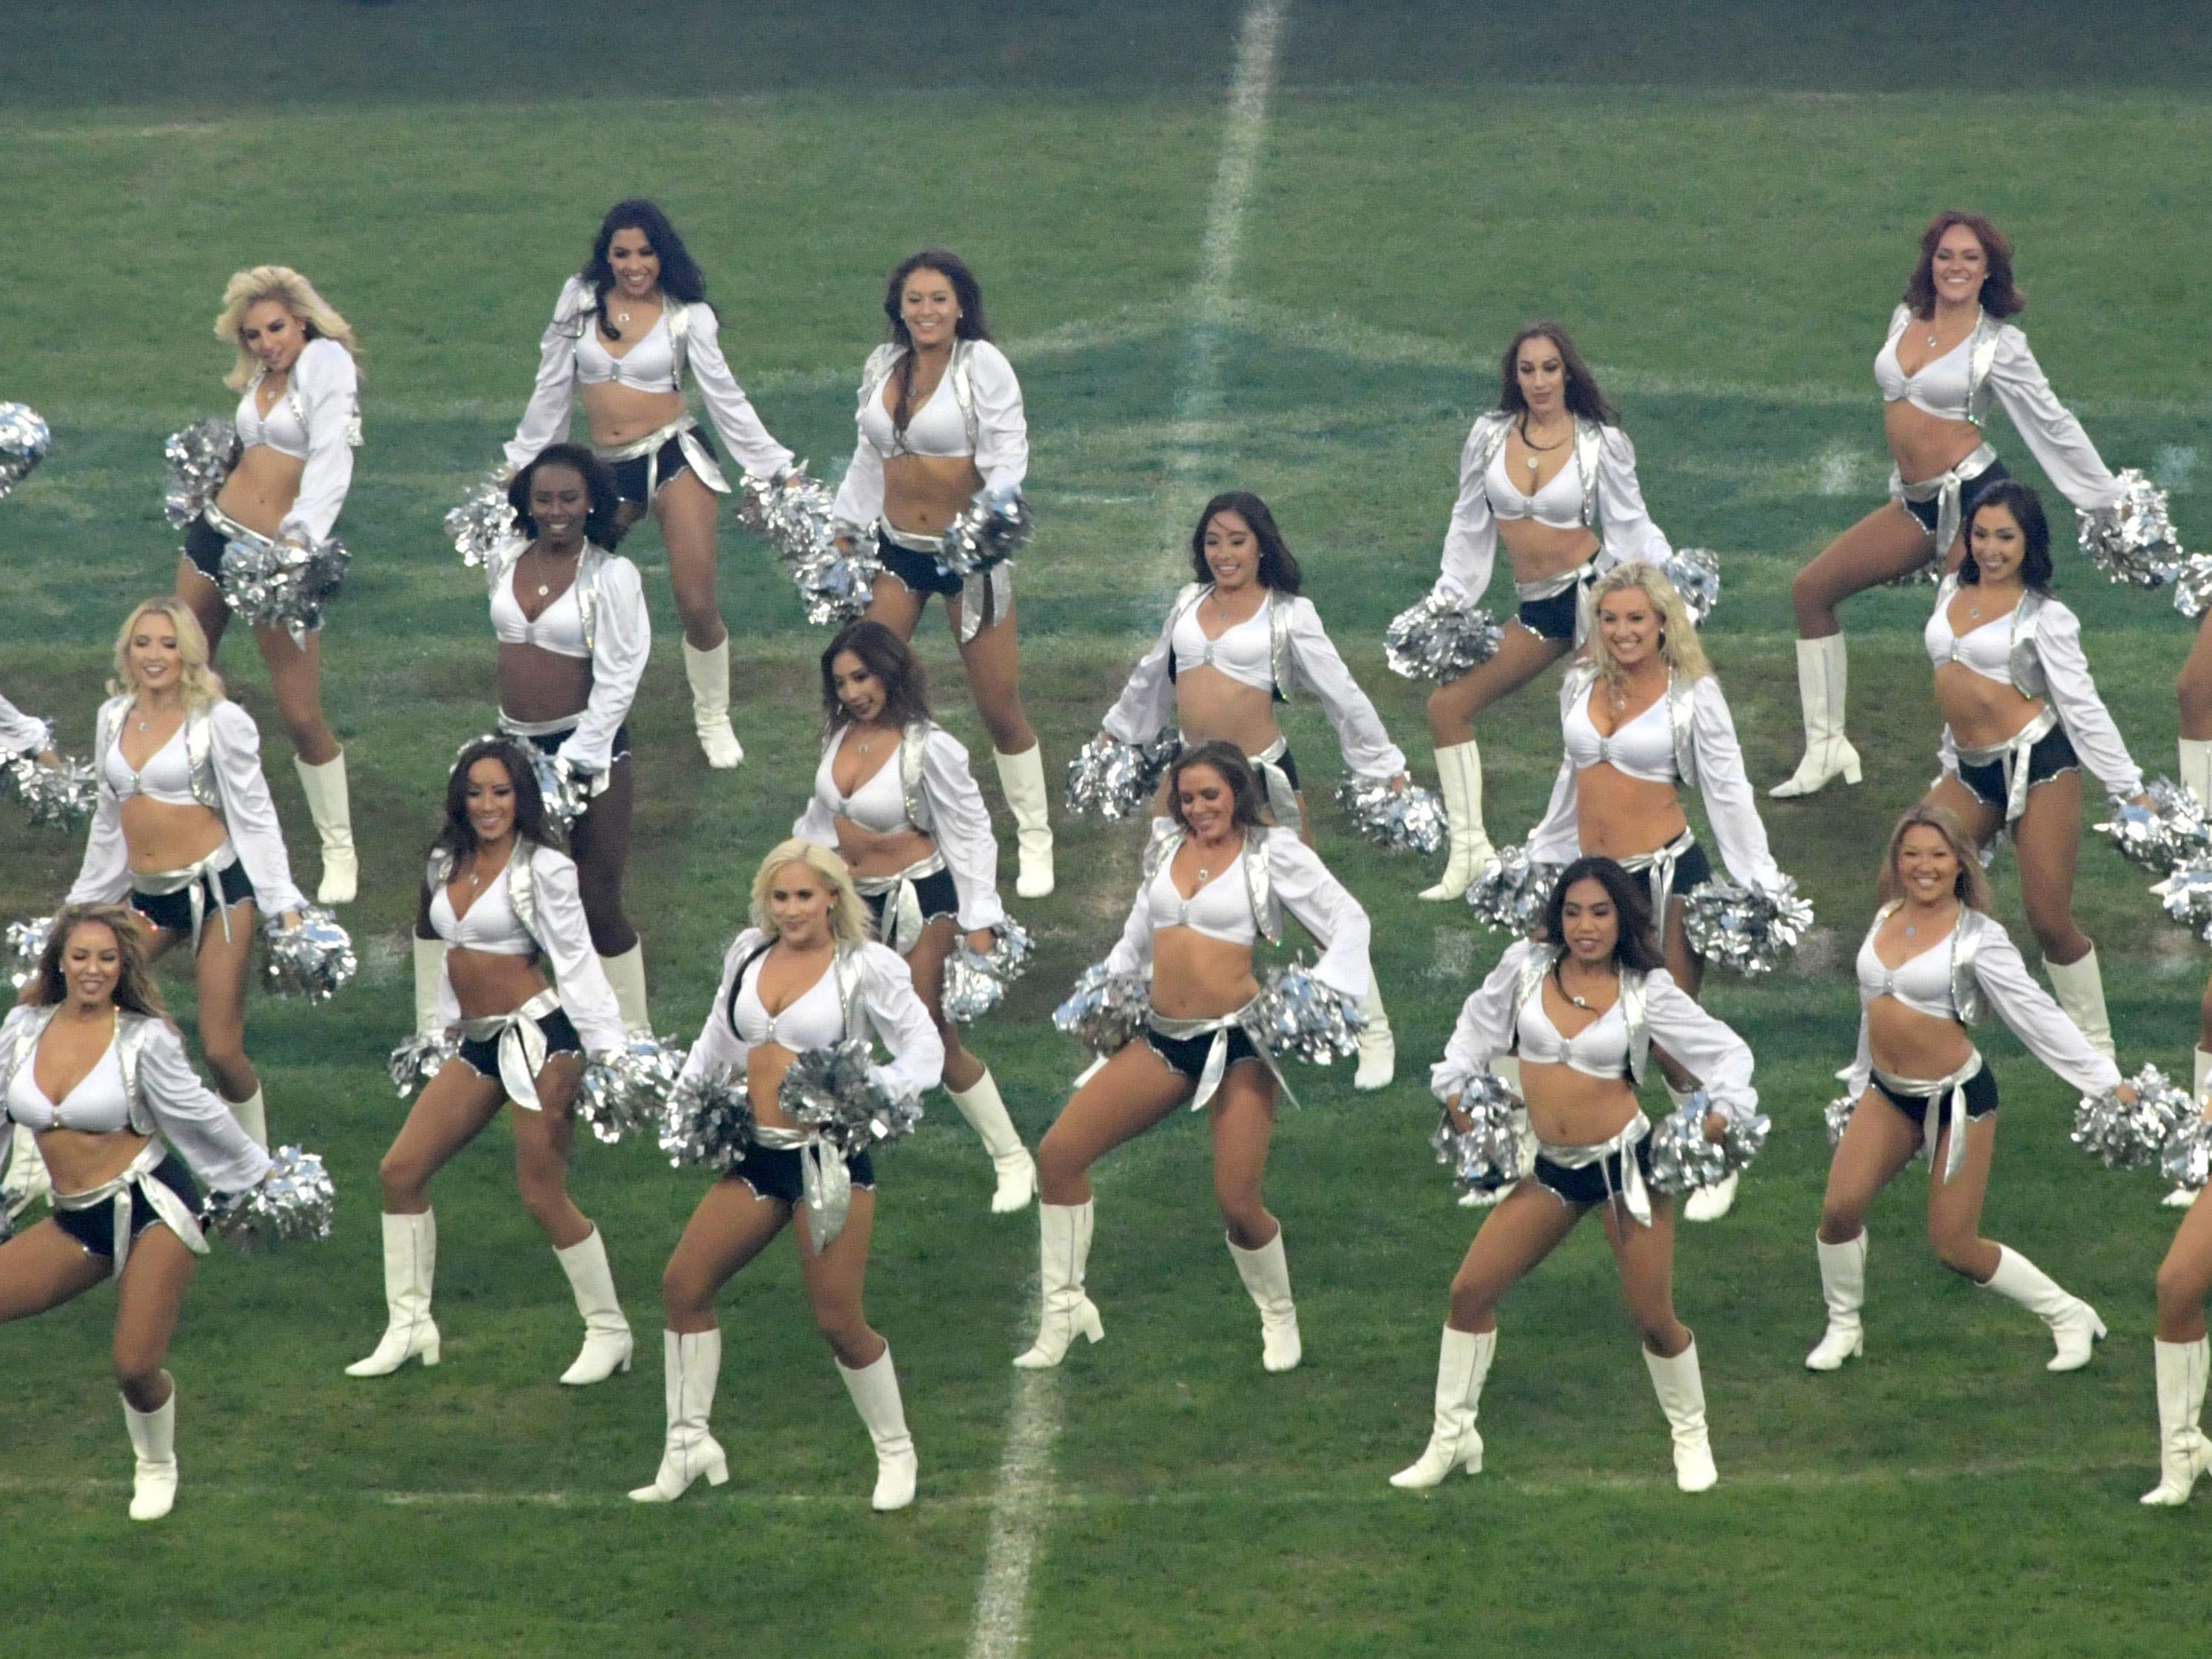 Oakland Raiders raiderette cheerleaders perform during an NFL International Series game against the Seattle Seahawks at Wembley Stadium in London.